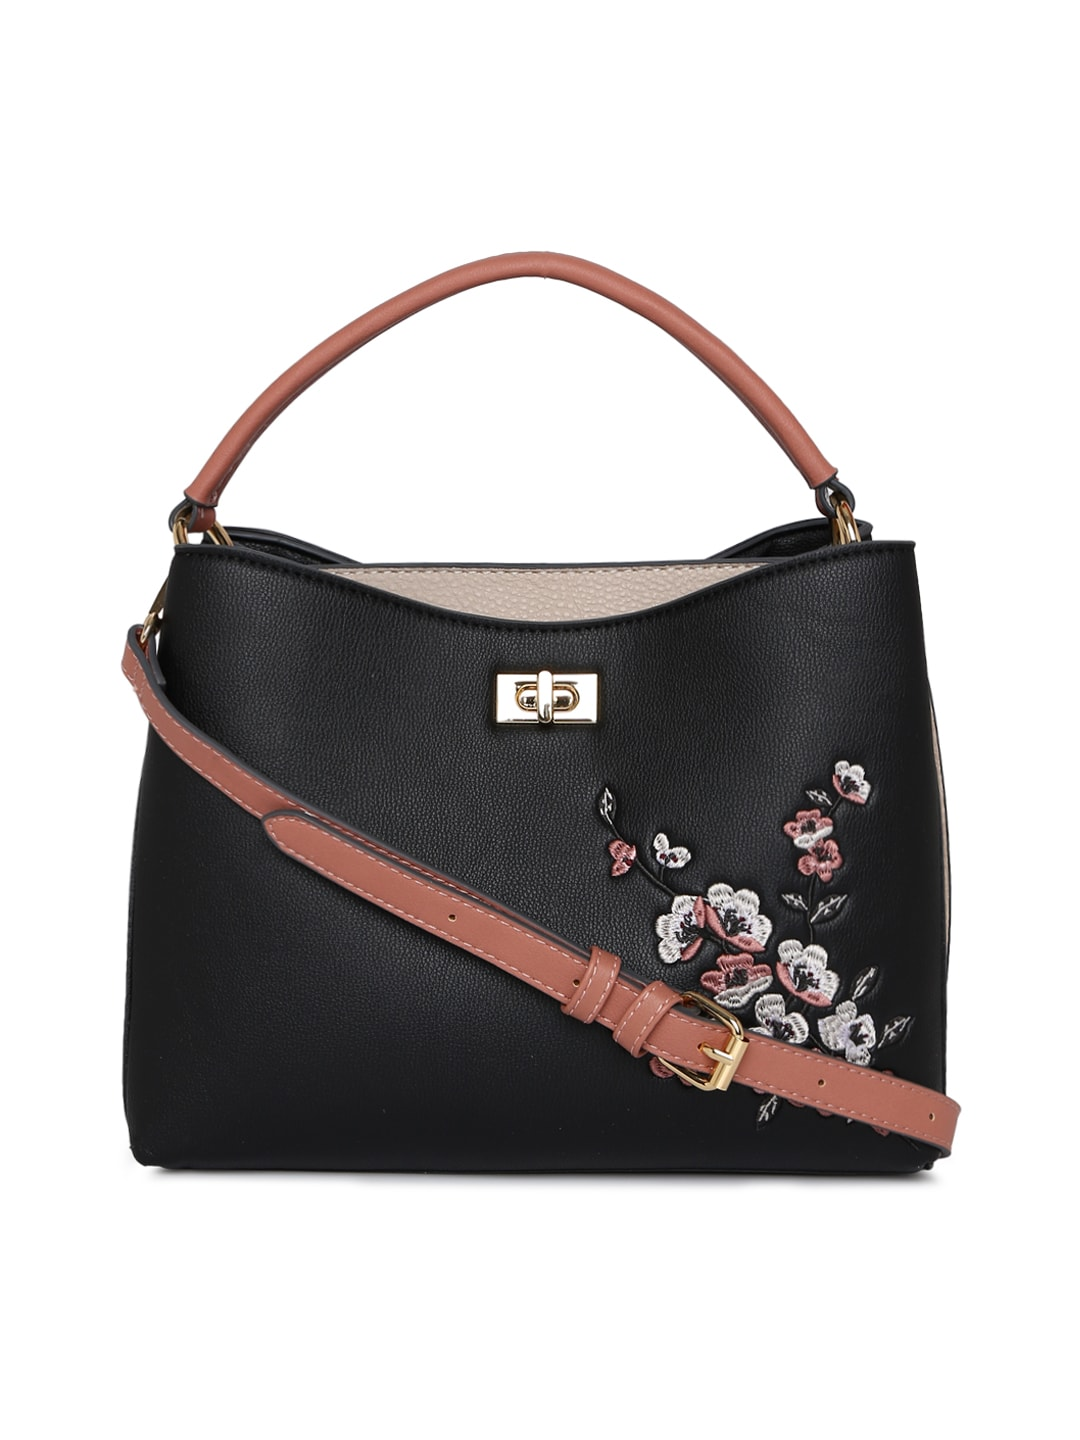 1c132c24a Bags Online - Buy Bags for men and Women Online in India